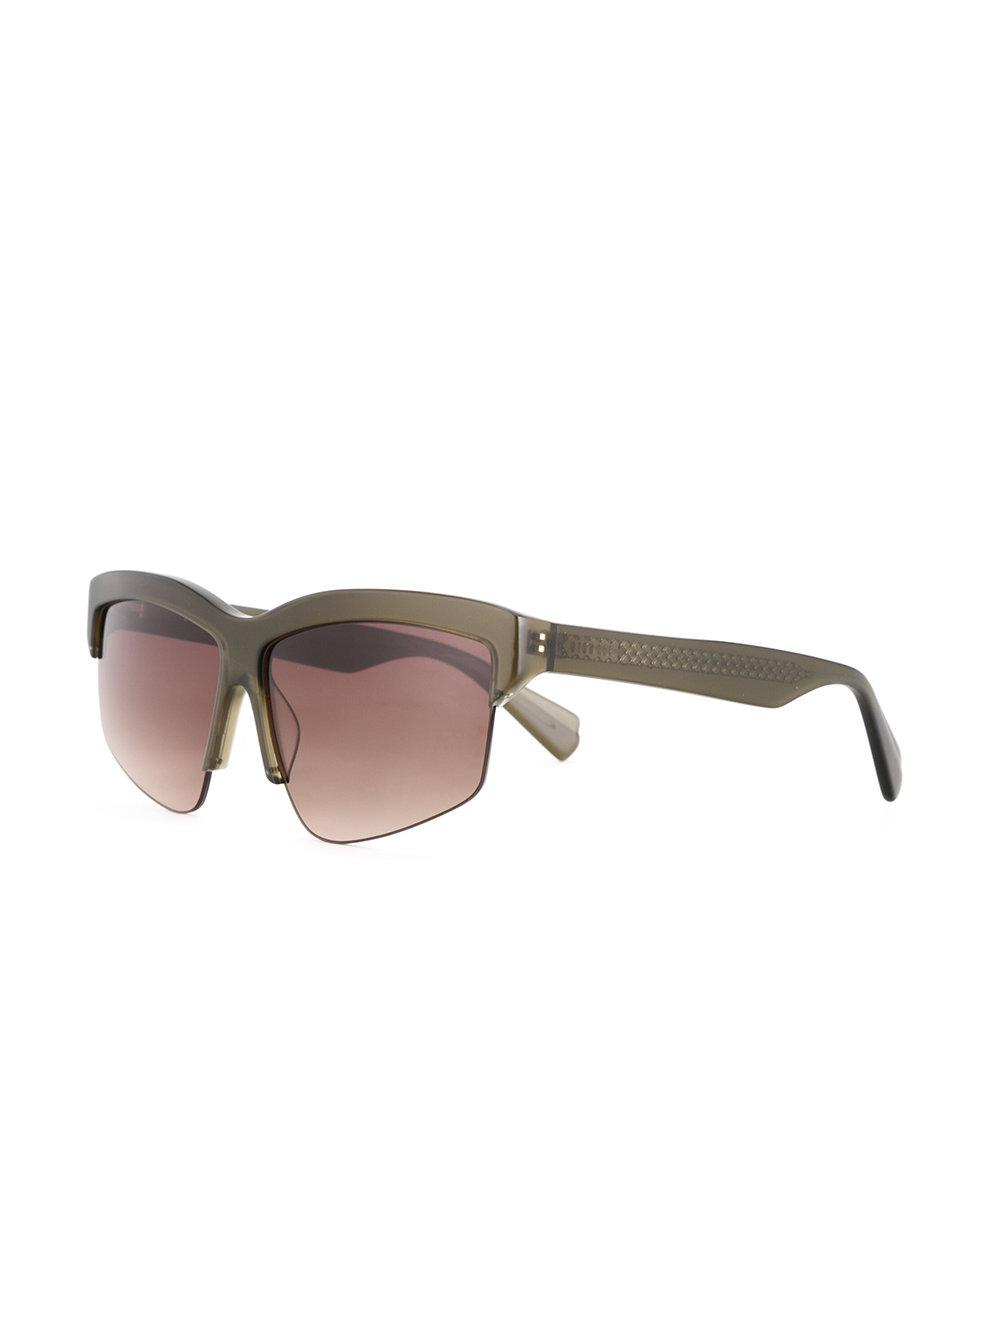 bb2525b8e7ce Dion Lee - Green Matte Sunglasses - Lyst. View fullscreen